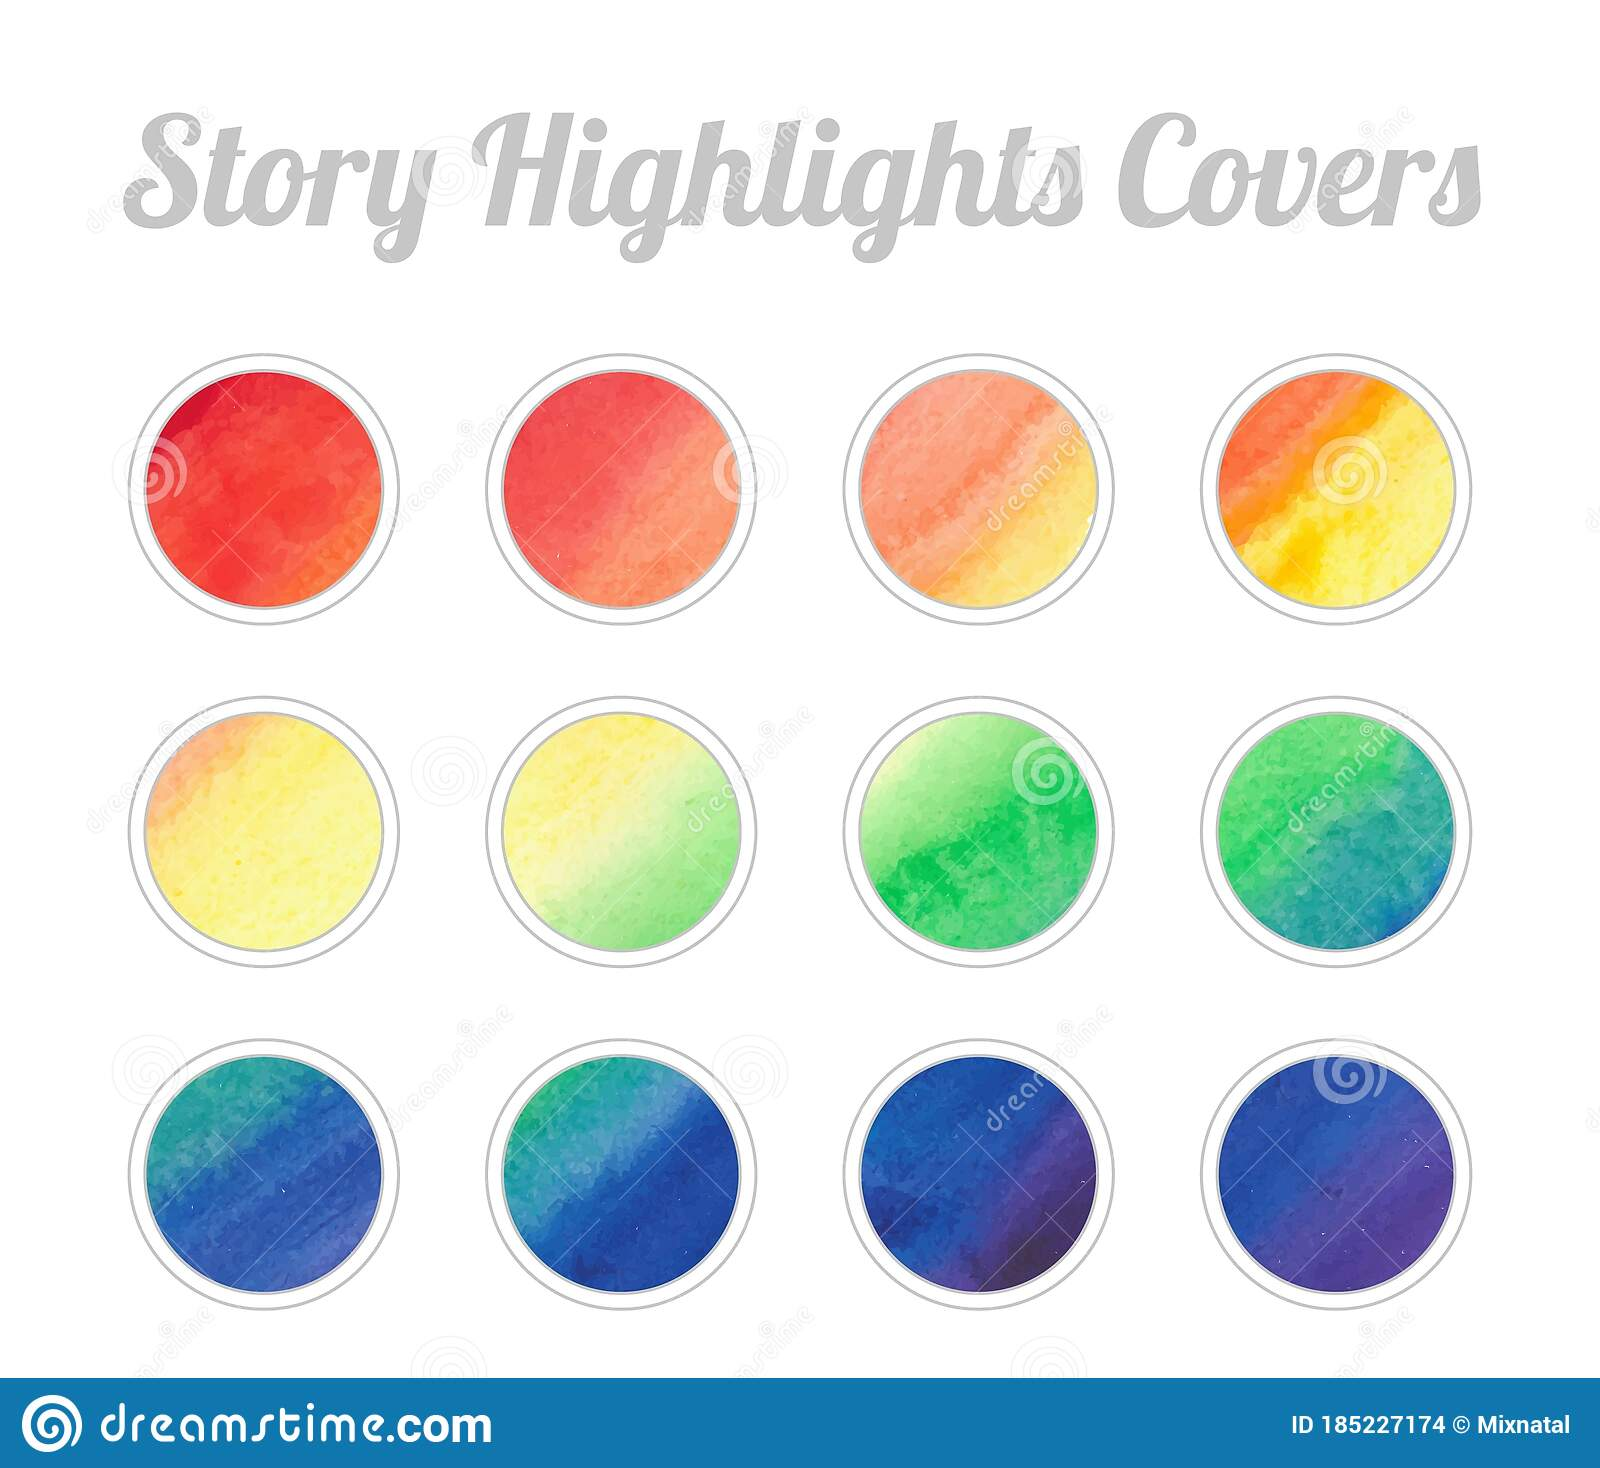 Set Of Story Highlights Covers Icons Colorful Watercolor Background Red Orange Yellow Green Blue Purple Bright Colors Stock Vector Illustration Of Abstract Background 185227174